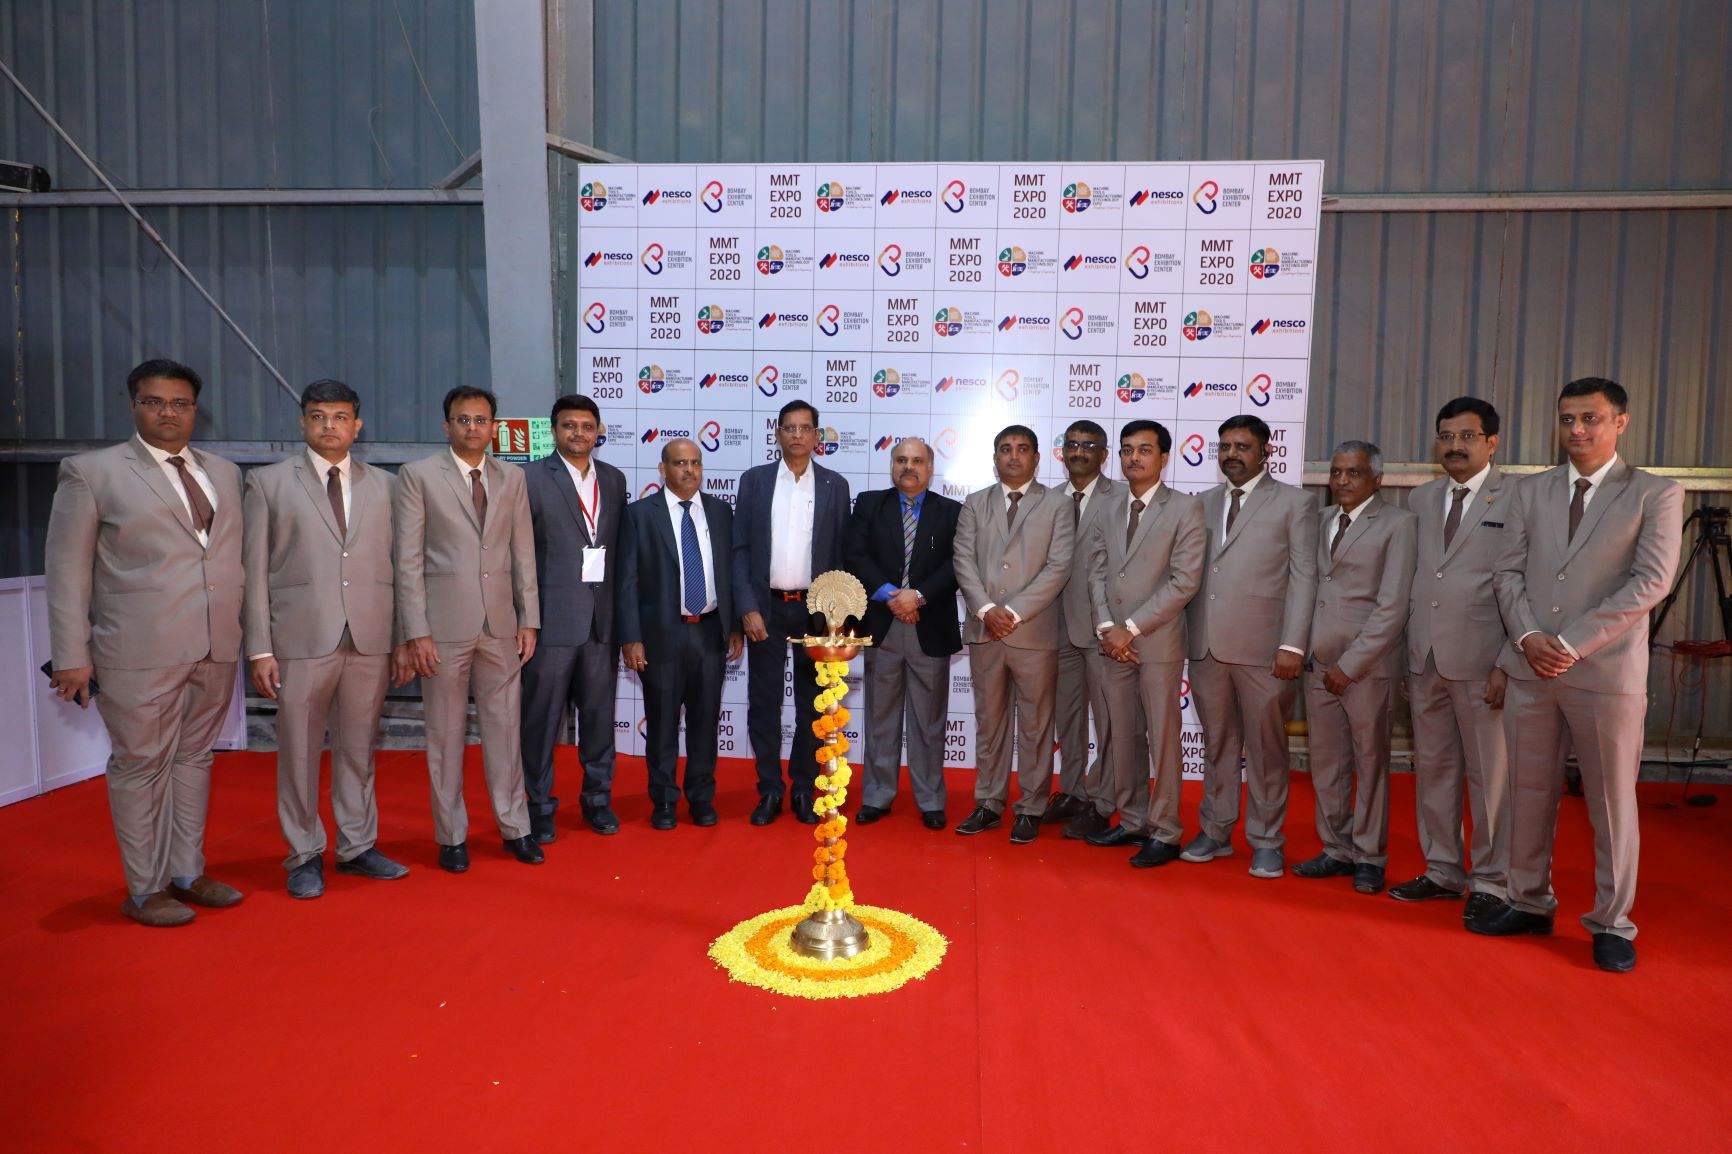 MMT Expo 2020 showcases world class manufacturing practices in its First Edition